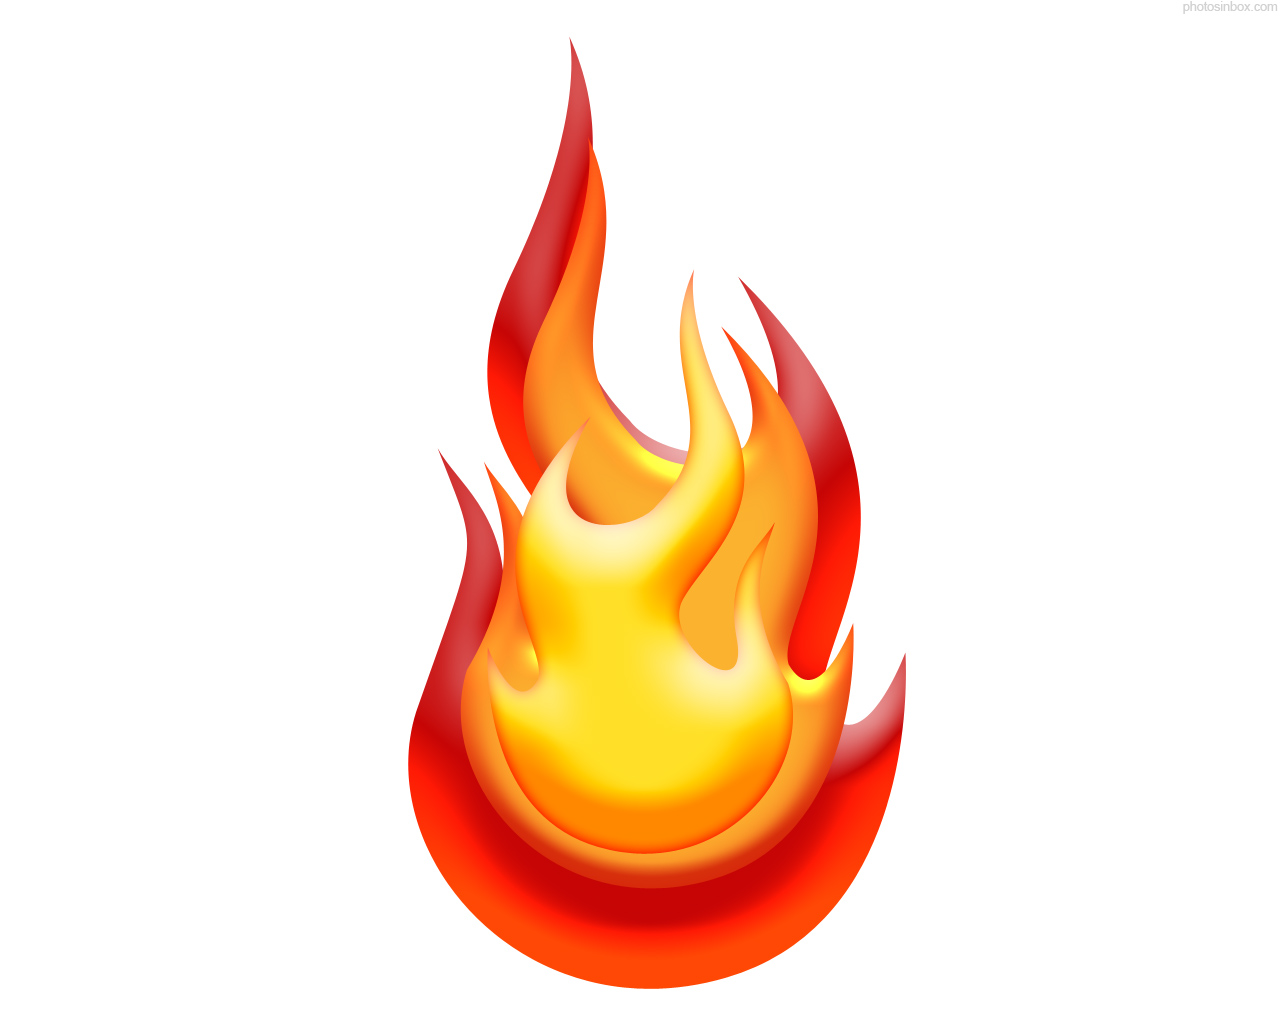 Clipart flames of fire images 2.